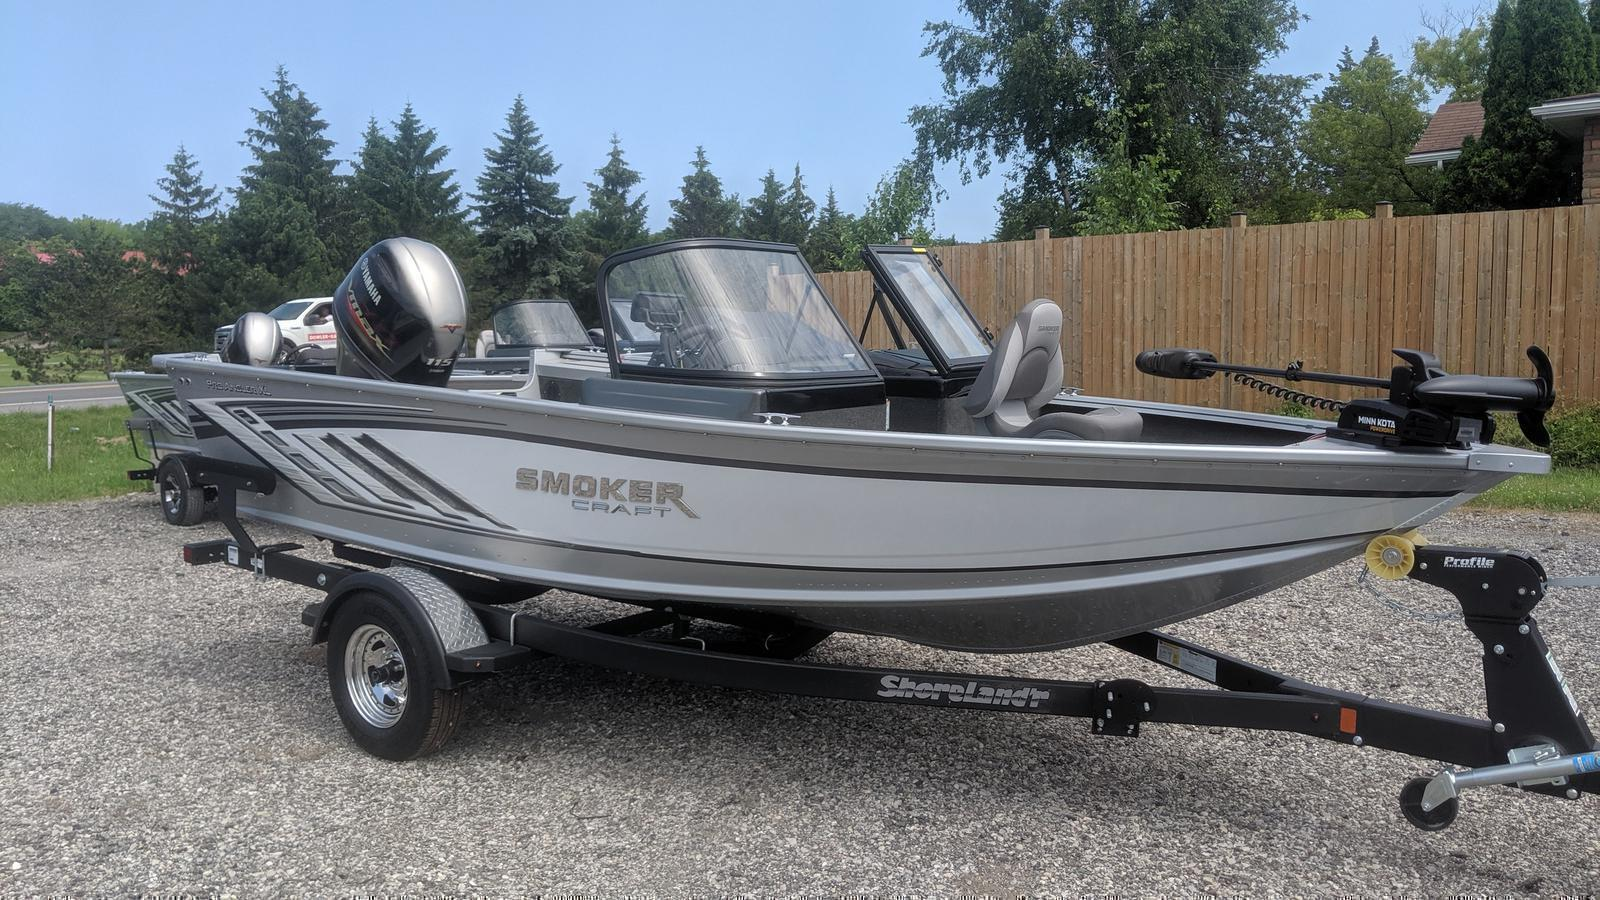 Inventory Southwest Marine Services Grand Bend, ON (519) 2382887